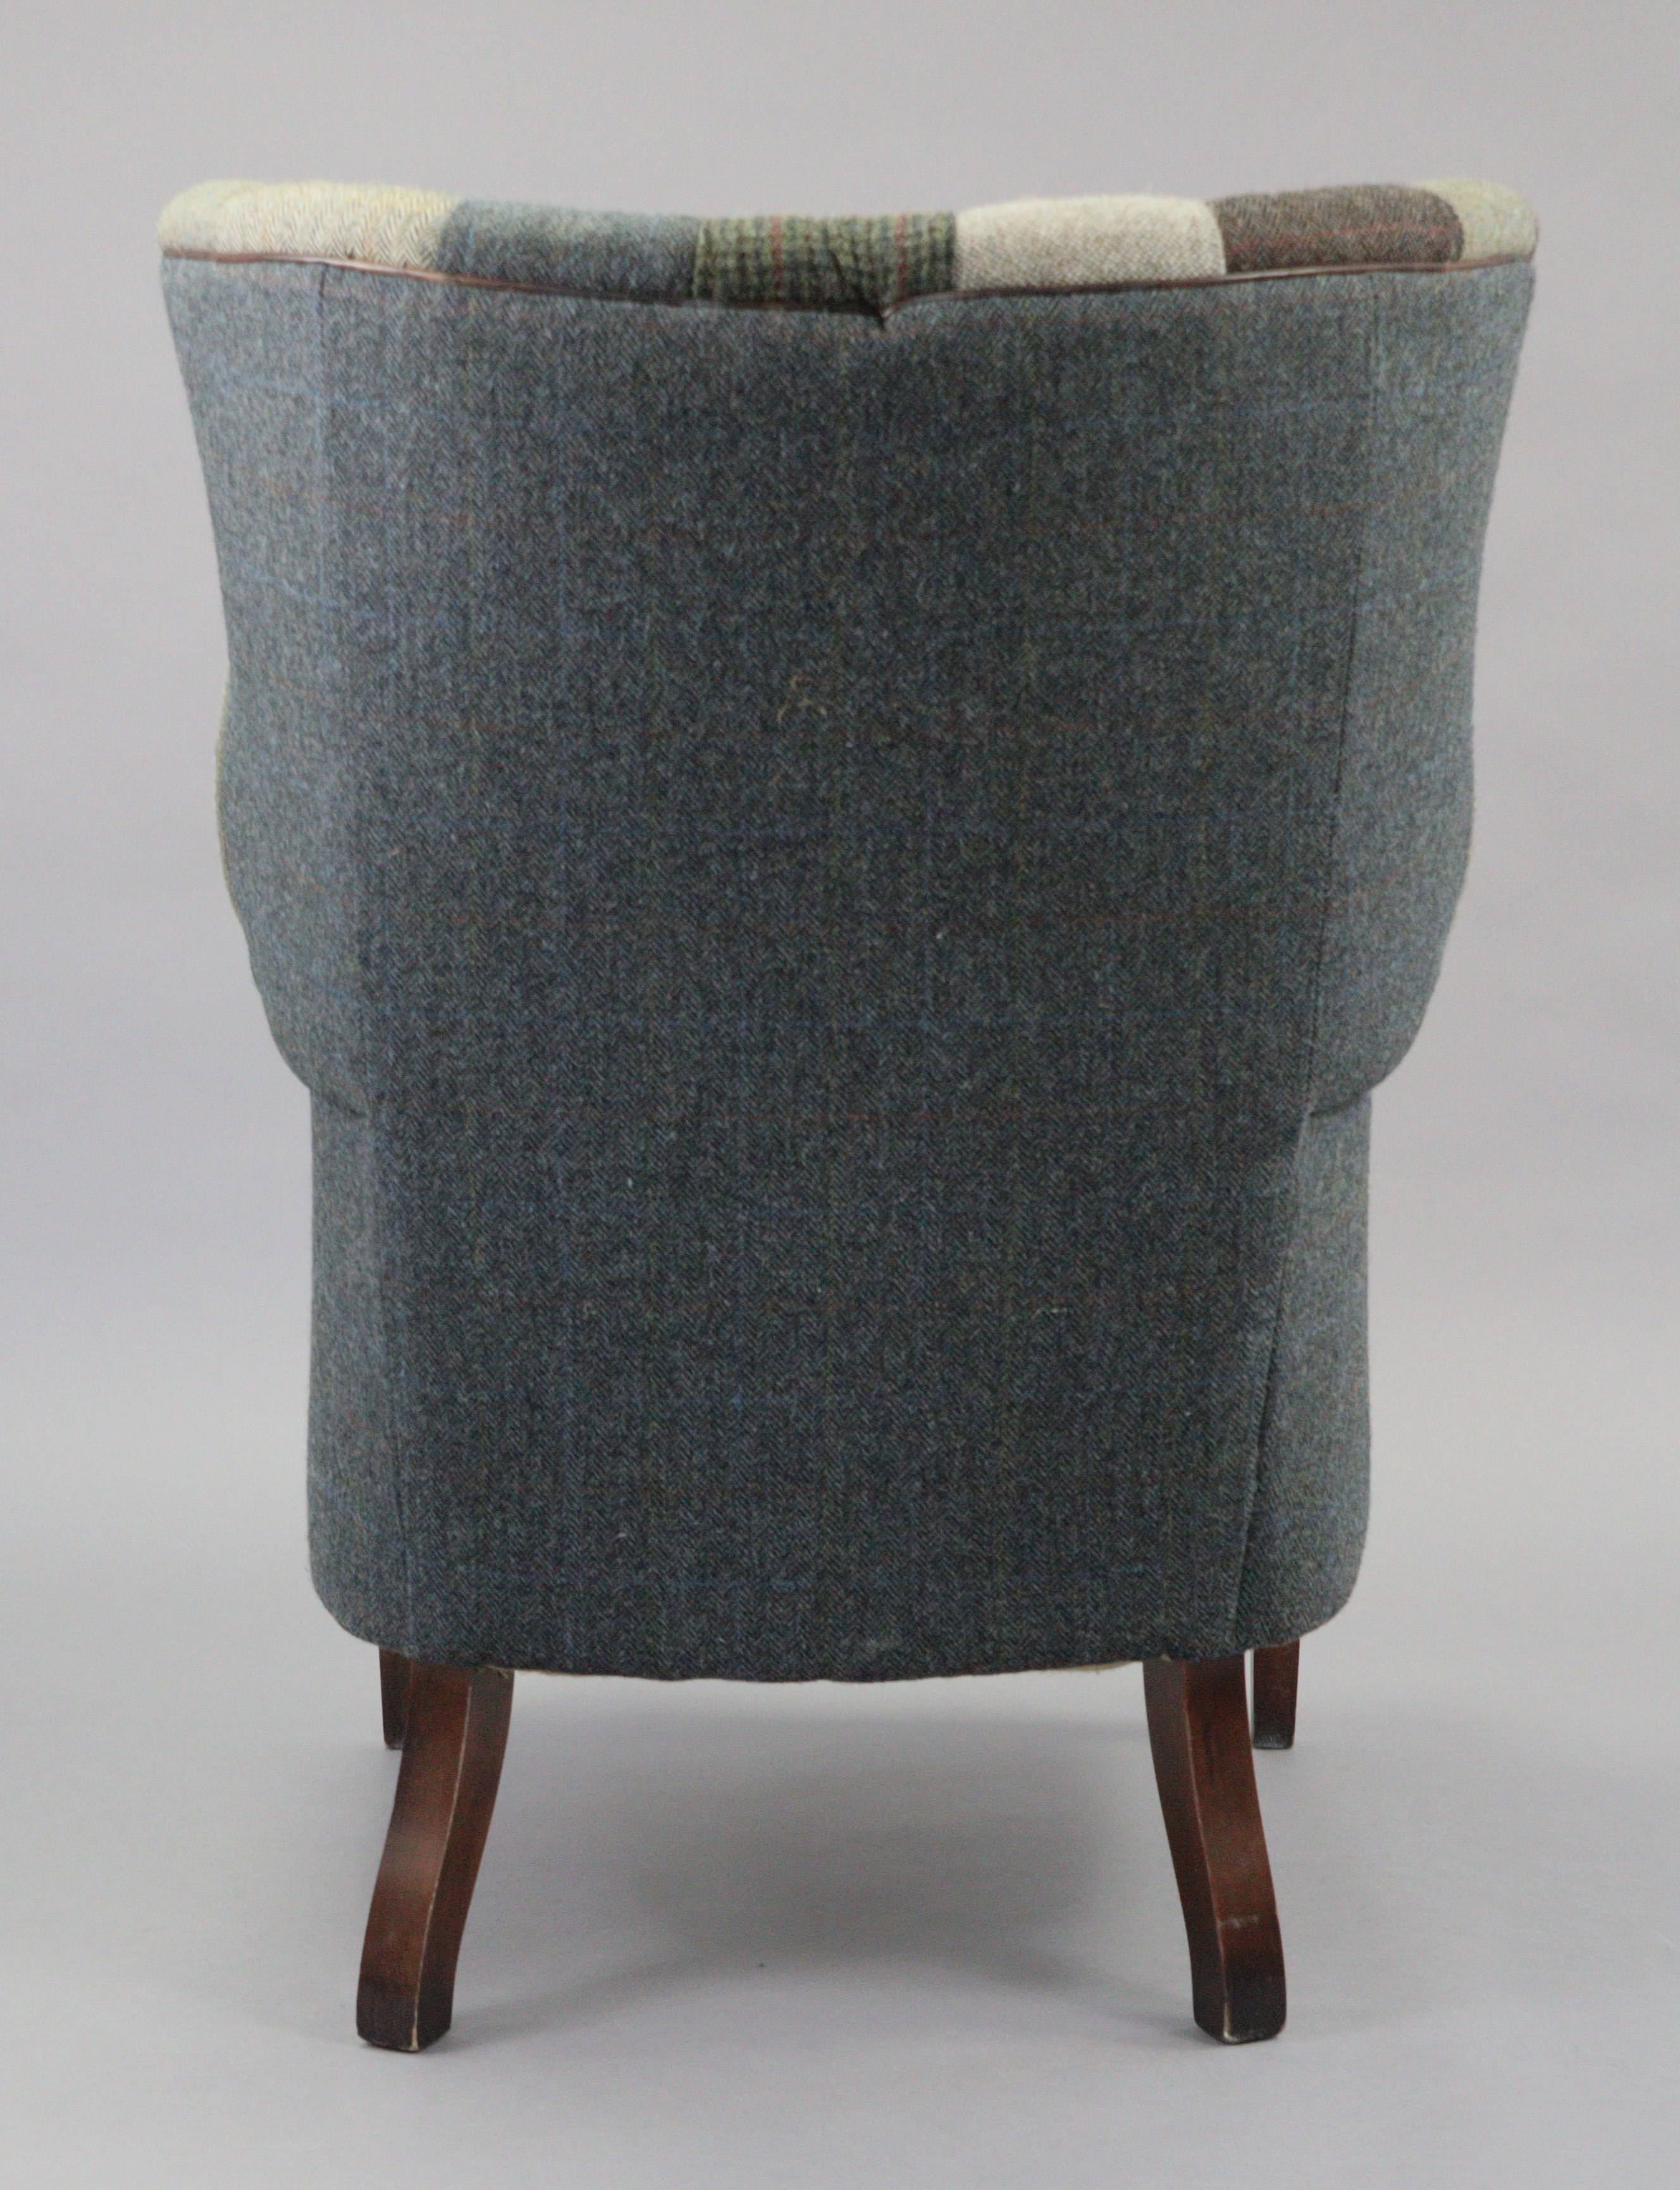 A Tetrad Harris Tweed Mackenzie buttoned-back armchair upholstered multi-coloured material, & on - Image 3 of 4